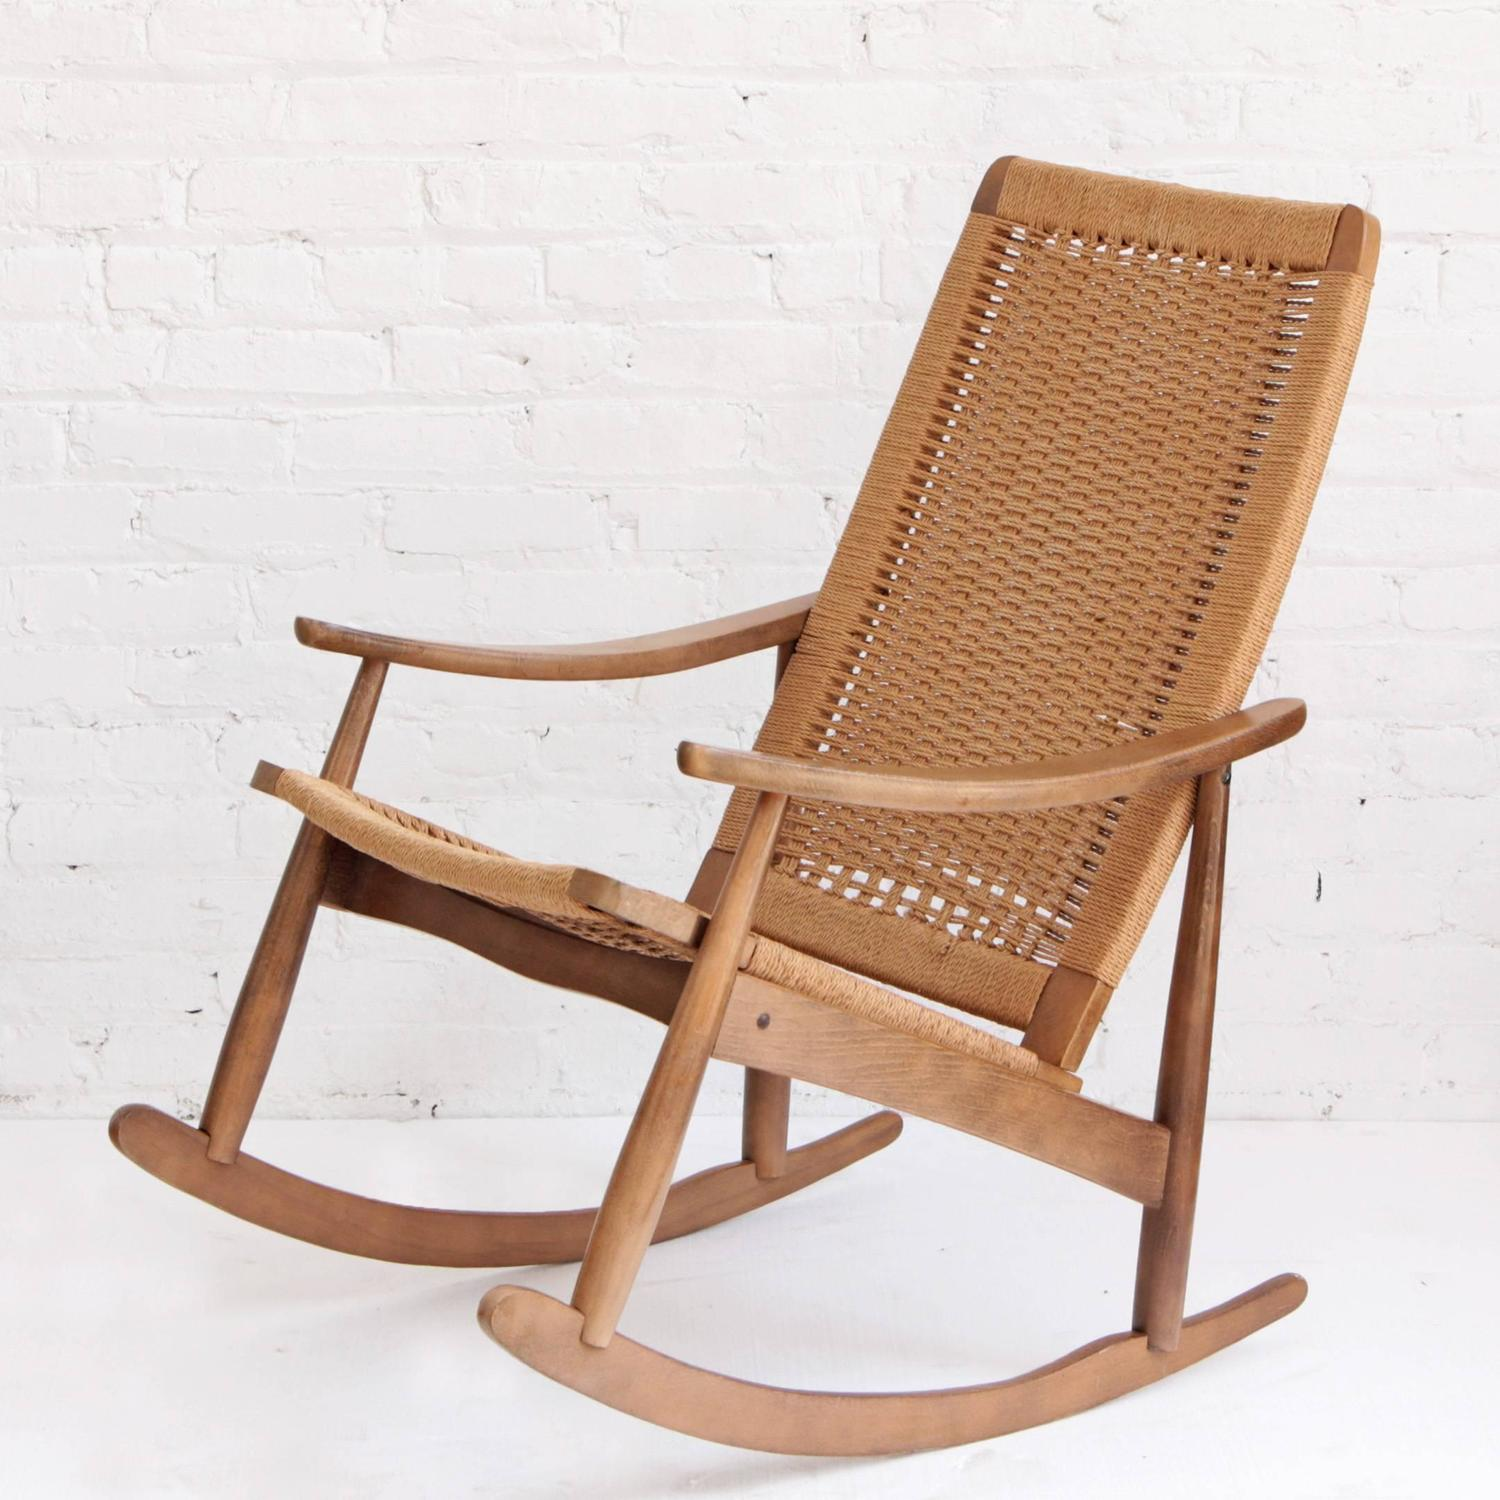 woven rope mid century modern rocking chair and ottoman at 1stdibs. Black Bedroom Furniture Sets. Home Design Ideas